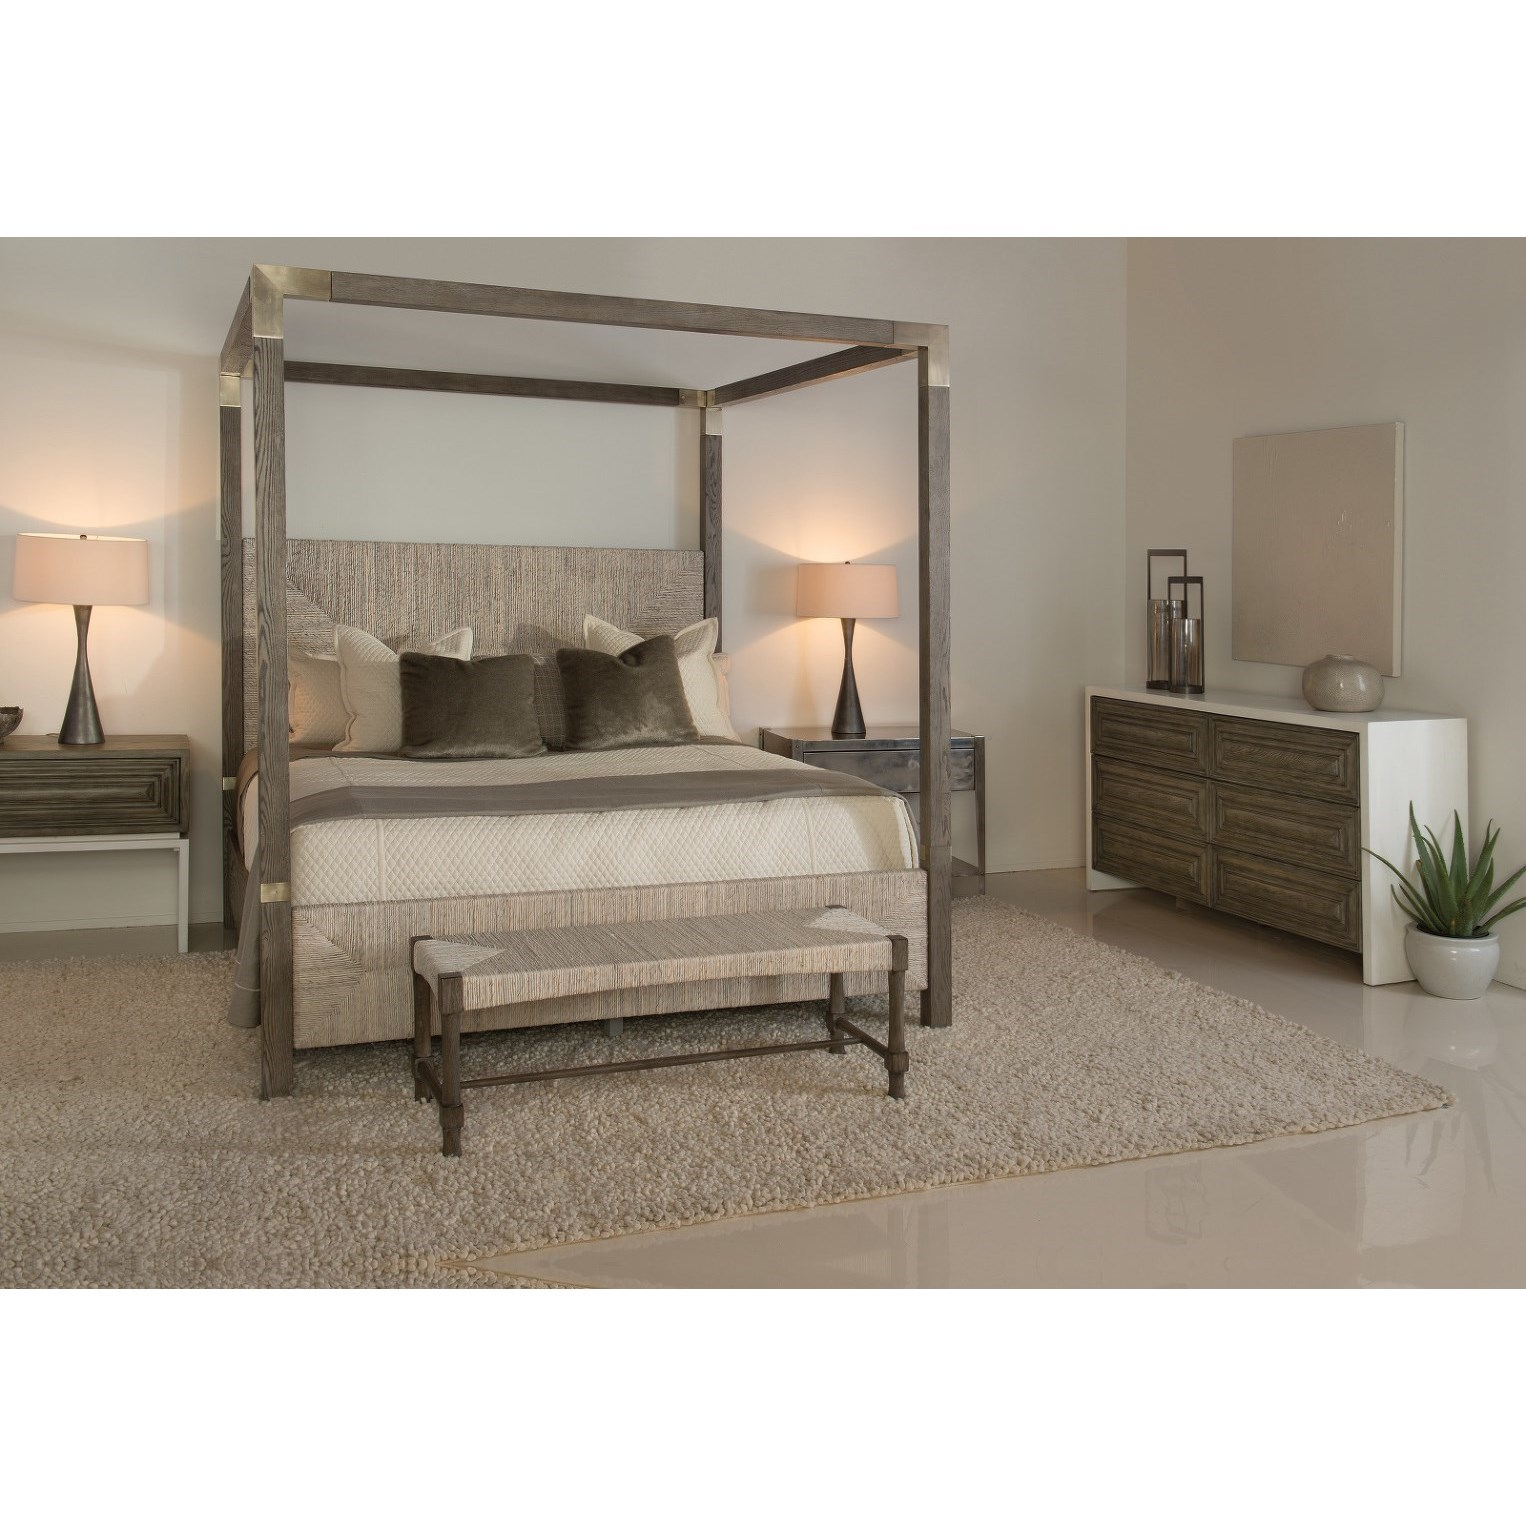 Bernhardt palma california king woven abaca canopy bed for Furniture palma